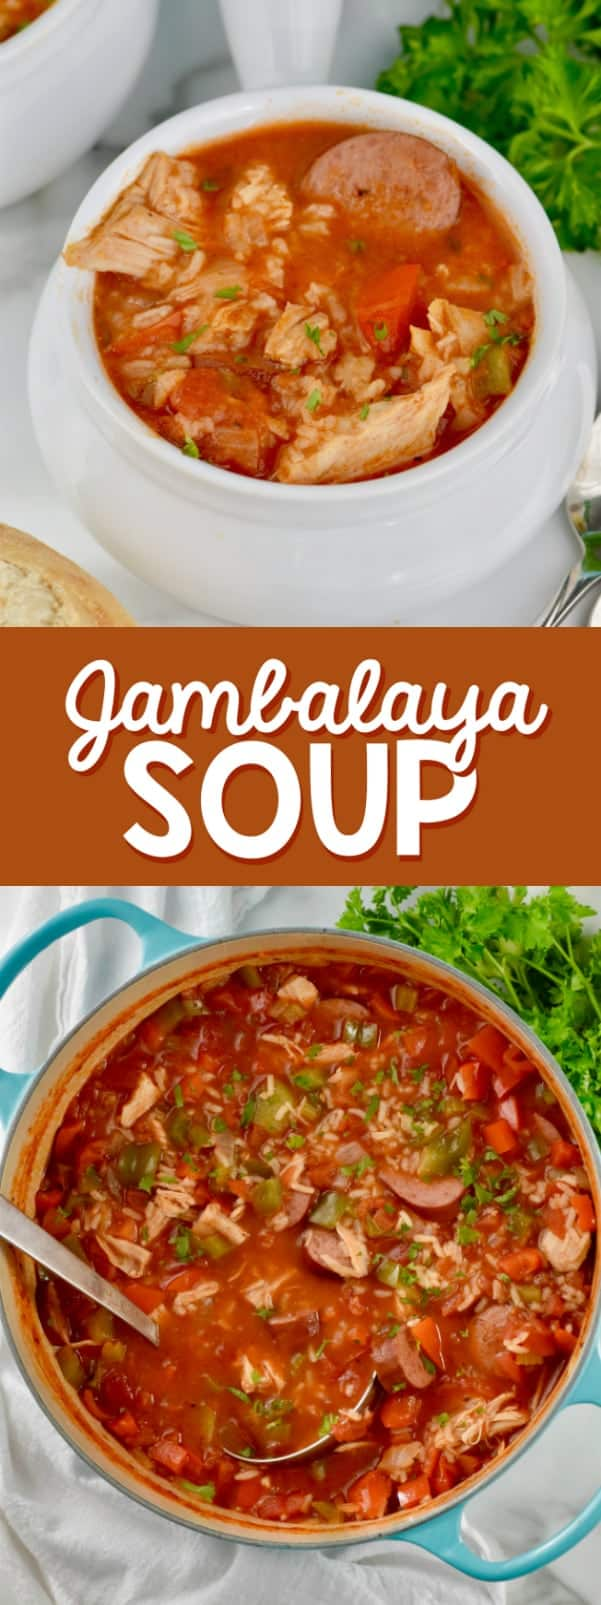 Your family is going to love this homemade Jambalaya Soup recipe! It is easy to make and full of so much rich flavor.